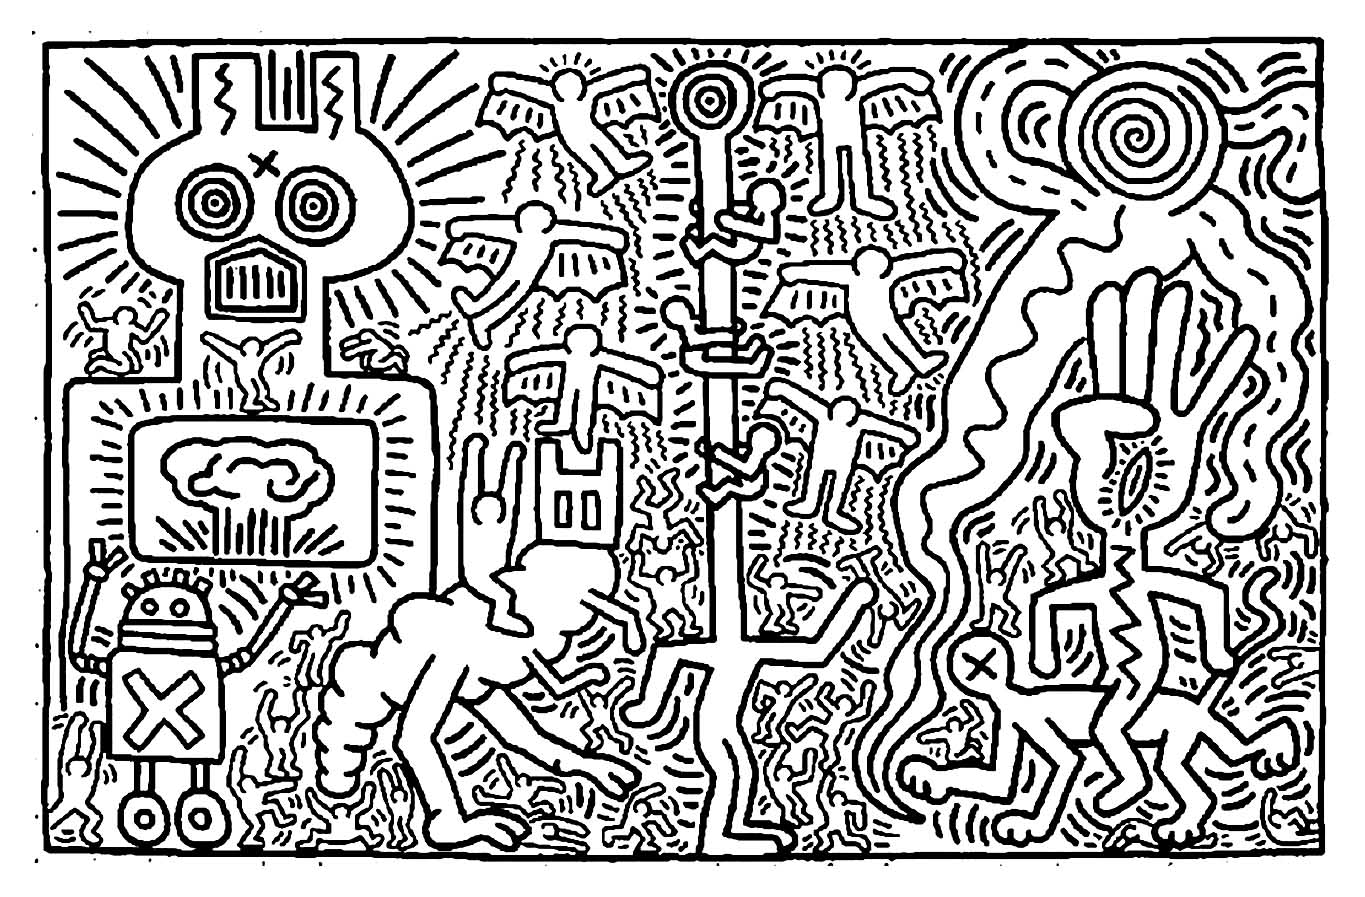 keith haring coloring pages keith haring coloring sheets coloring pages haring keith pages coloring